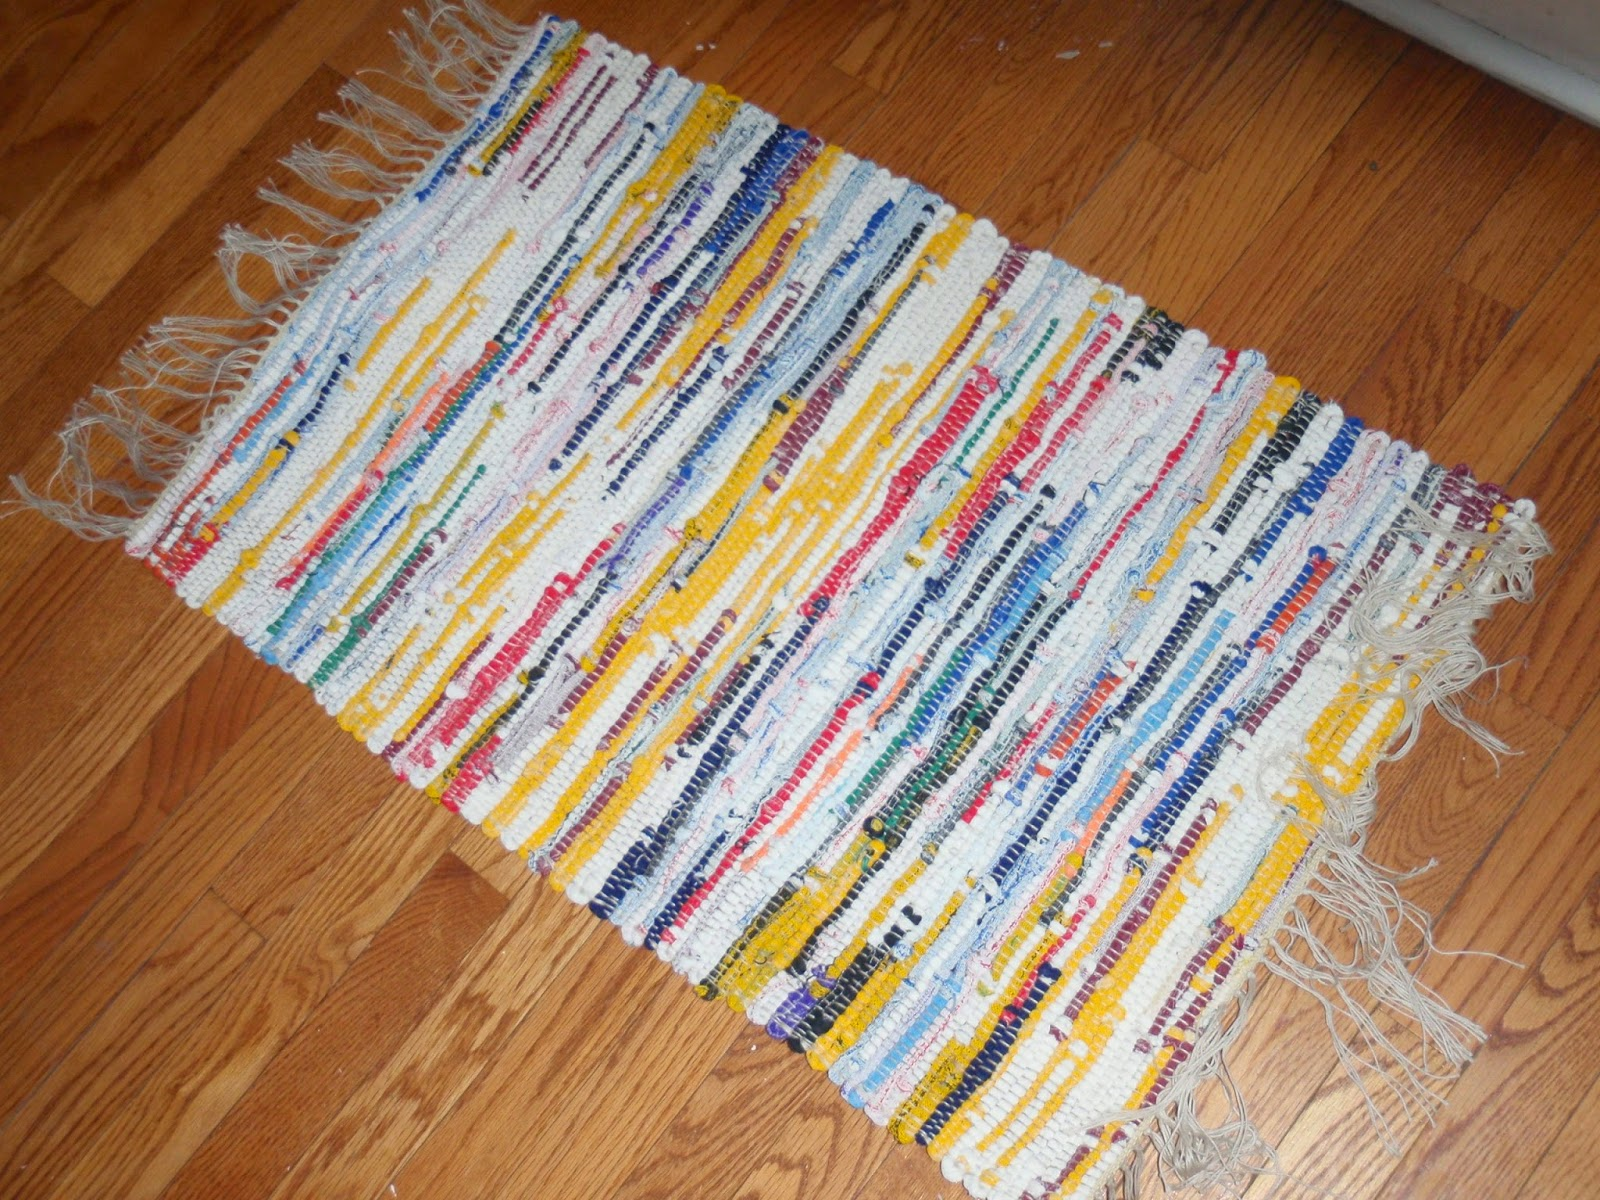 They Are Made From Textured Fabric Remnants And Weave Into Very Soft Thick Rugs Would Be Perfect For A Bathroom